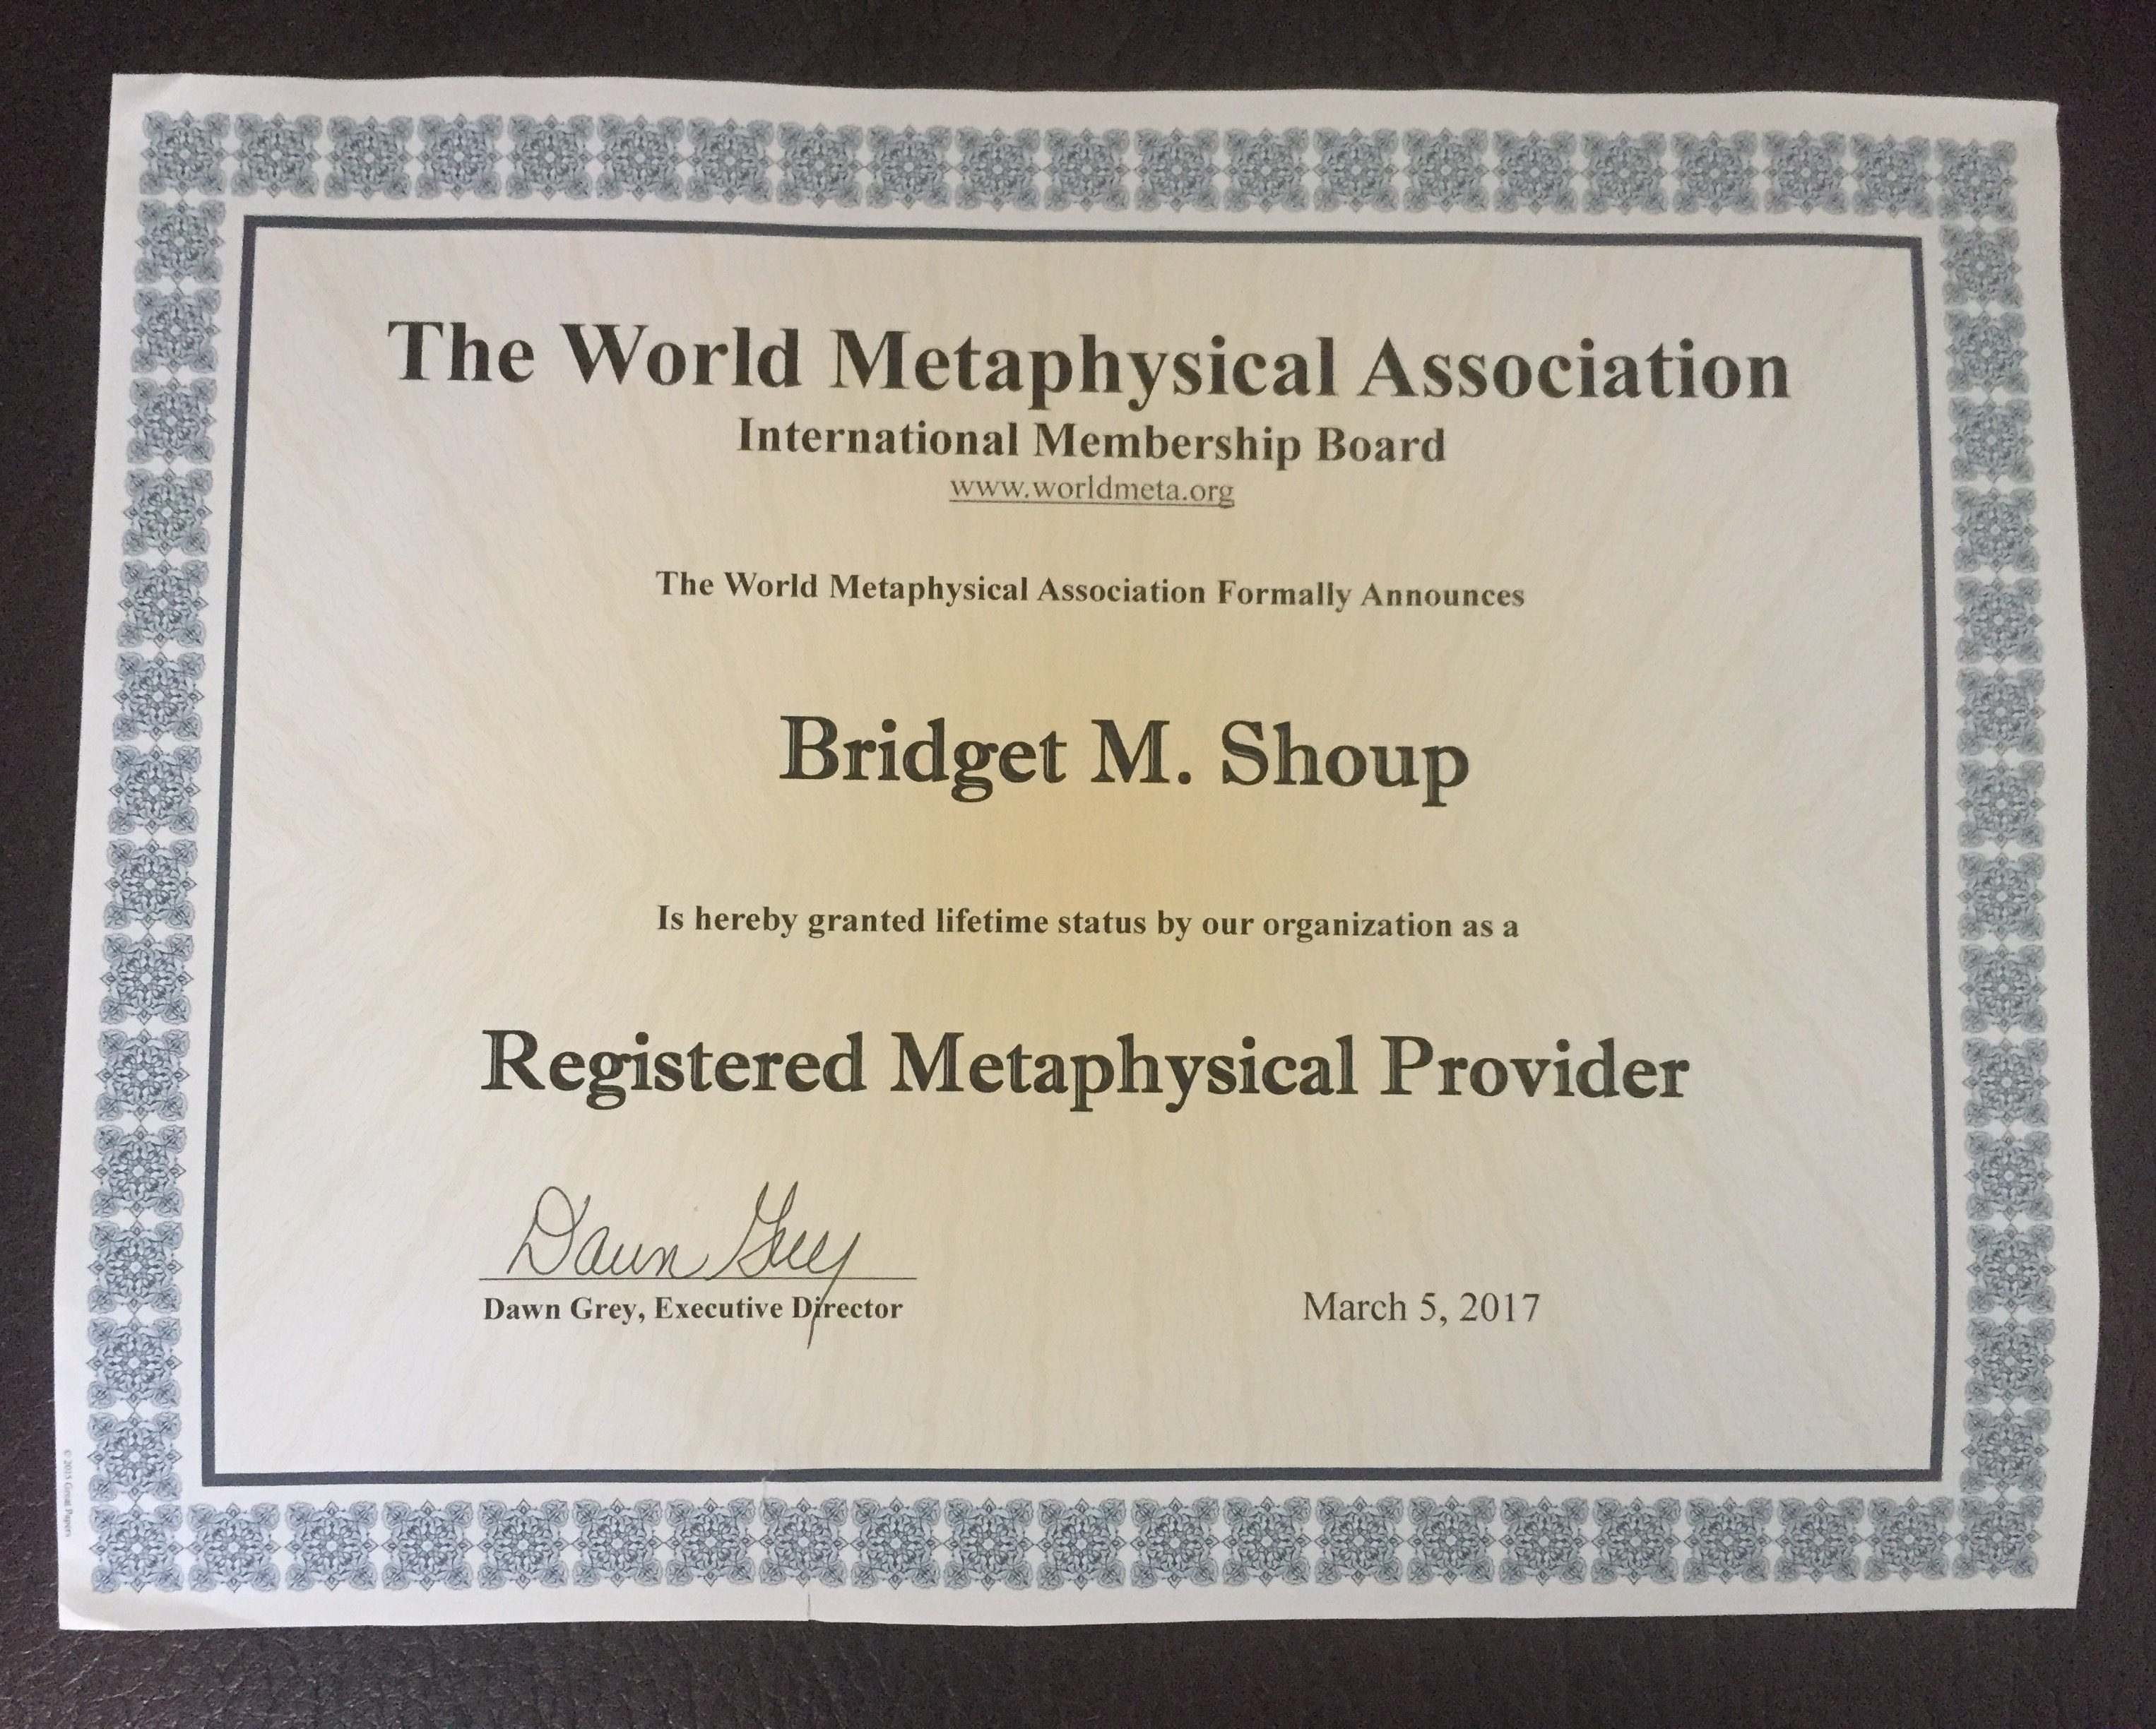 Registered Metaphysical Provider Certificate.jpg